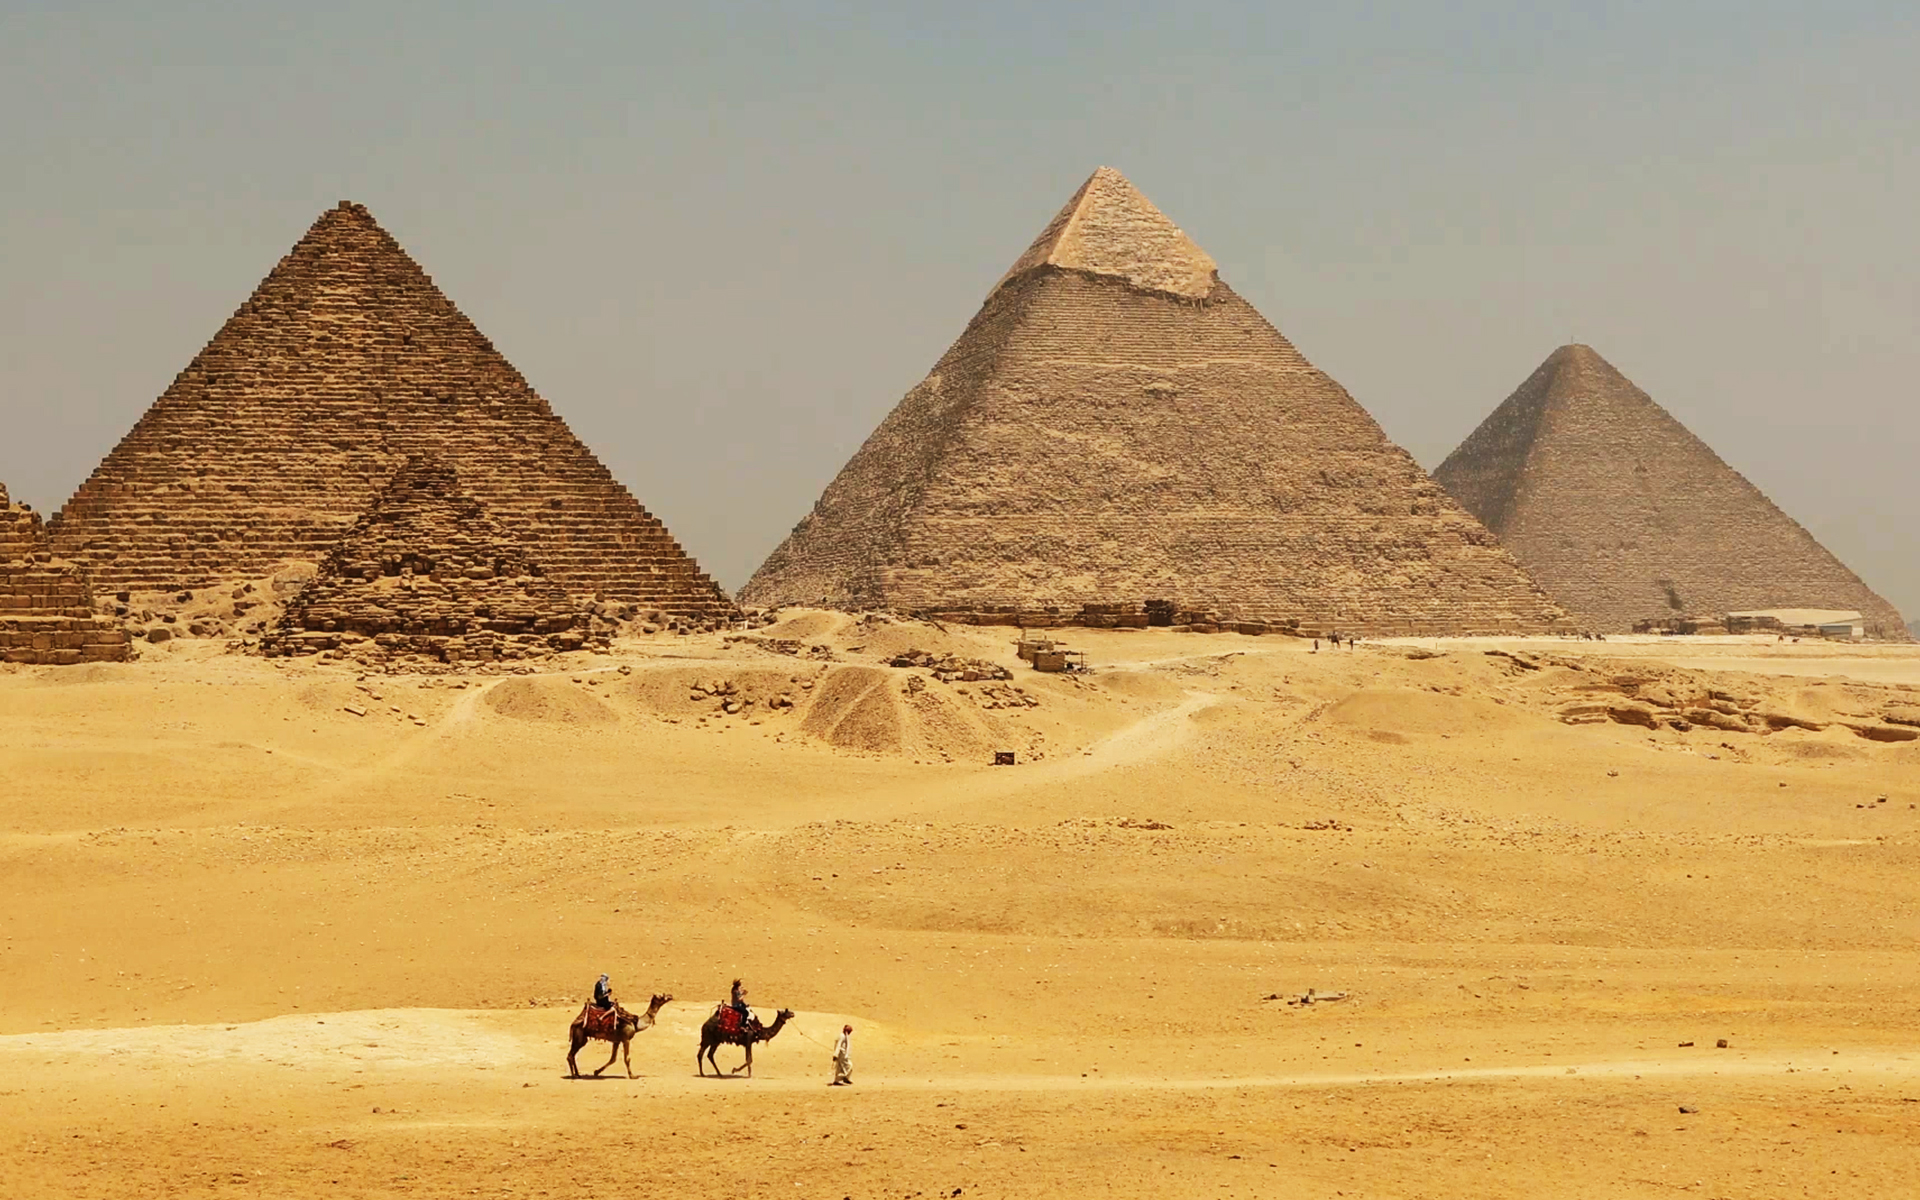 Terms & conditions for the 'Egypt is waiting for you' giveaway